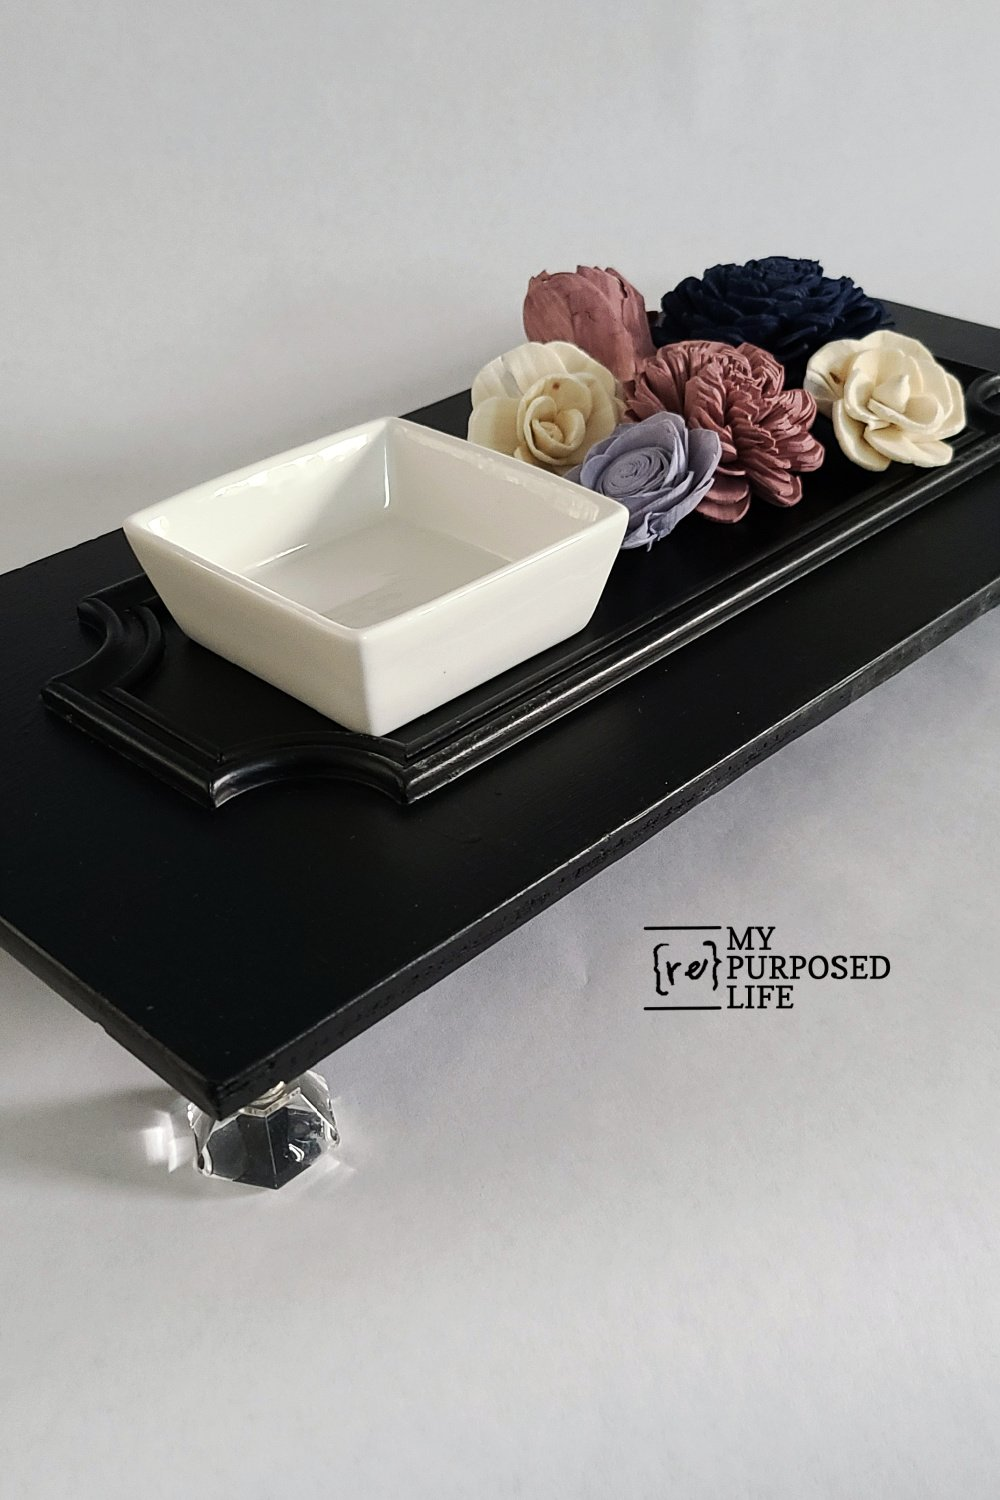 How to make a cabinet door vanity tray in six easy steps using paint and reclaimed glass knobs. Step by step directions to do it yourself. #MyRepurposedLife #repurposed #cabinetdoor #vanitytray #diy #easy #thriftstore #makeover via @repurposedlife